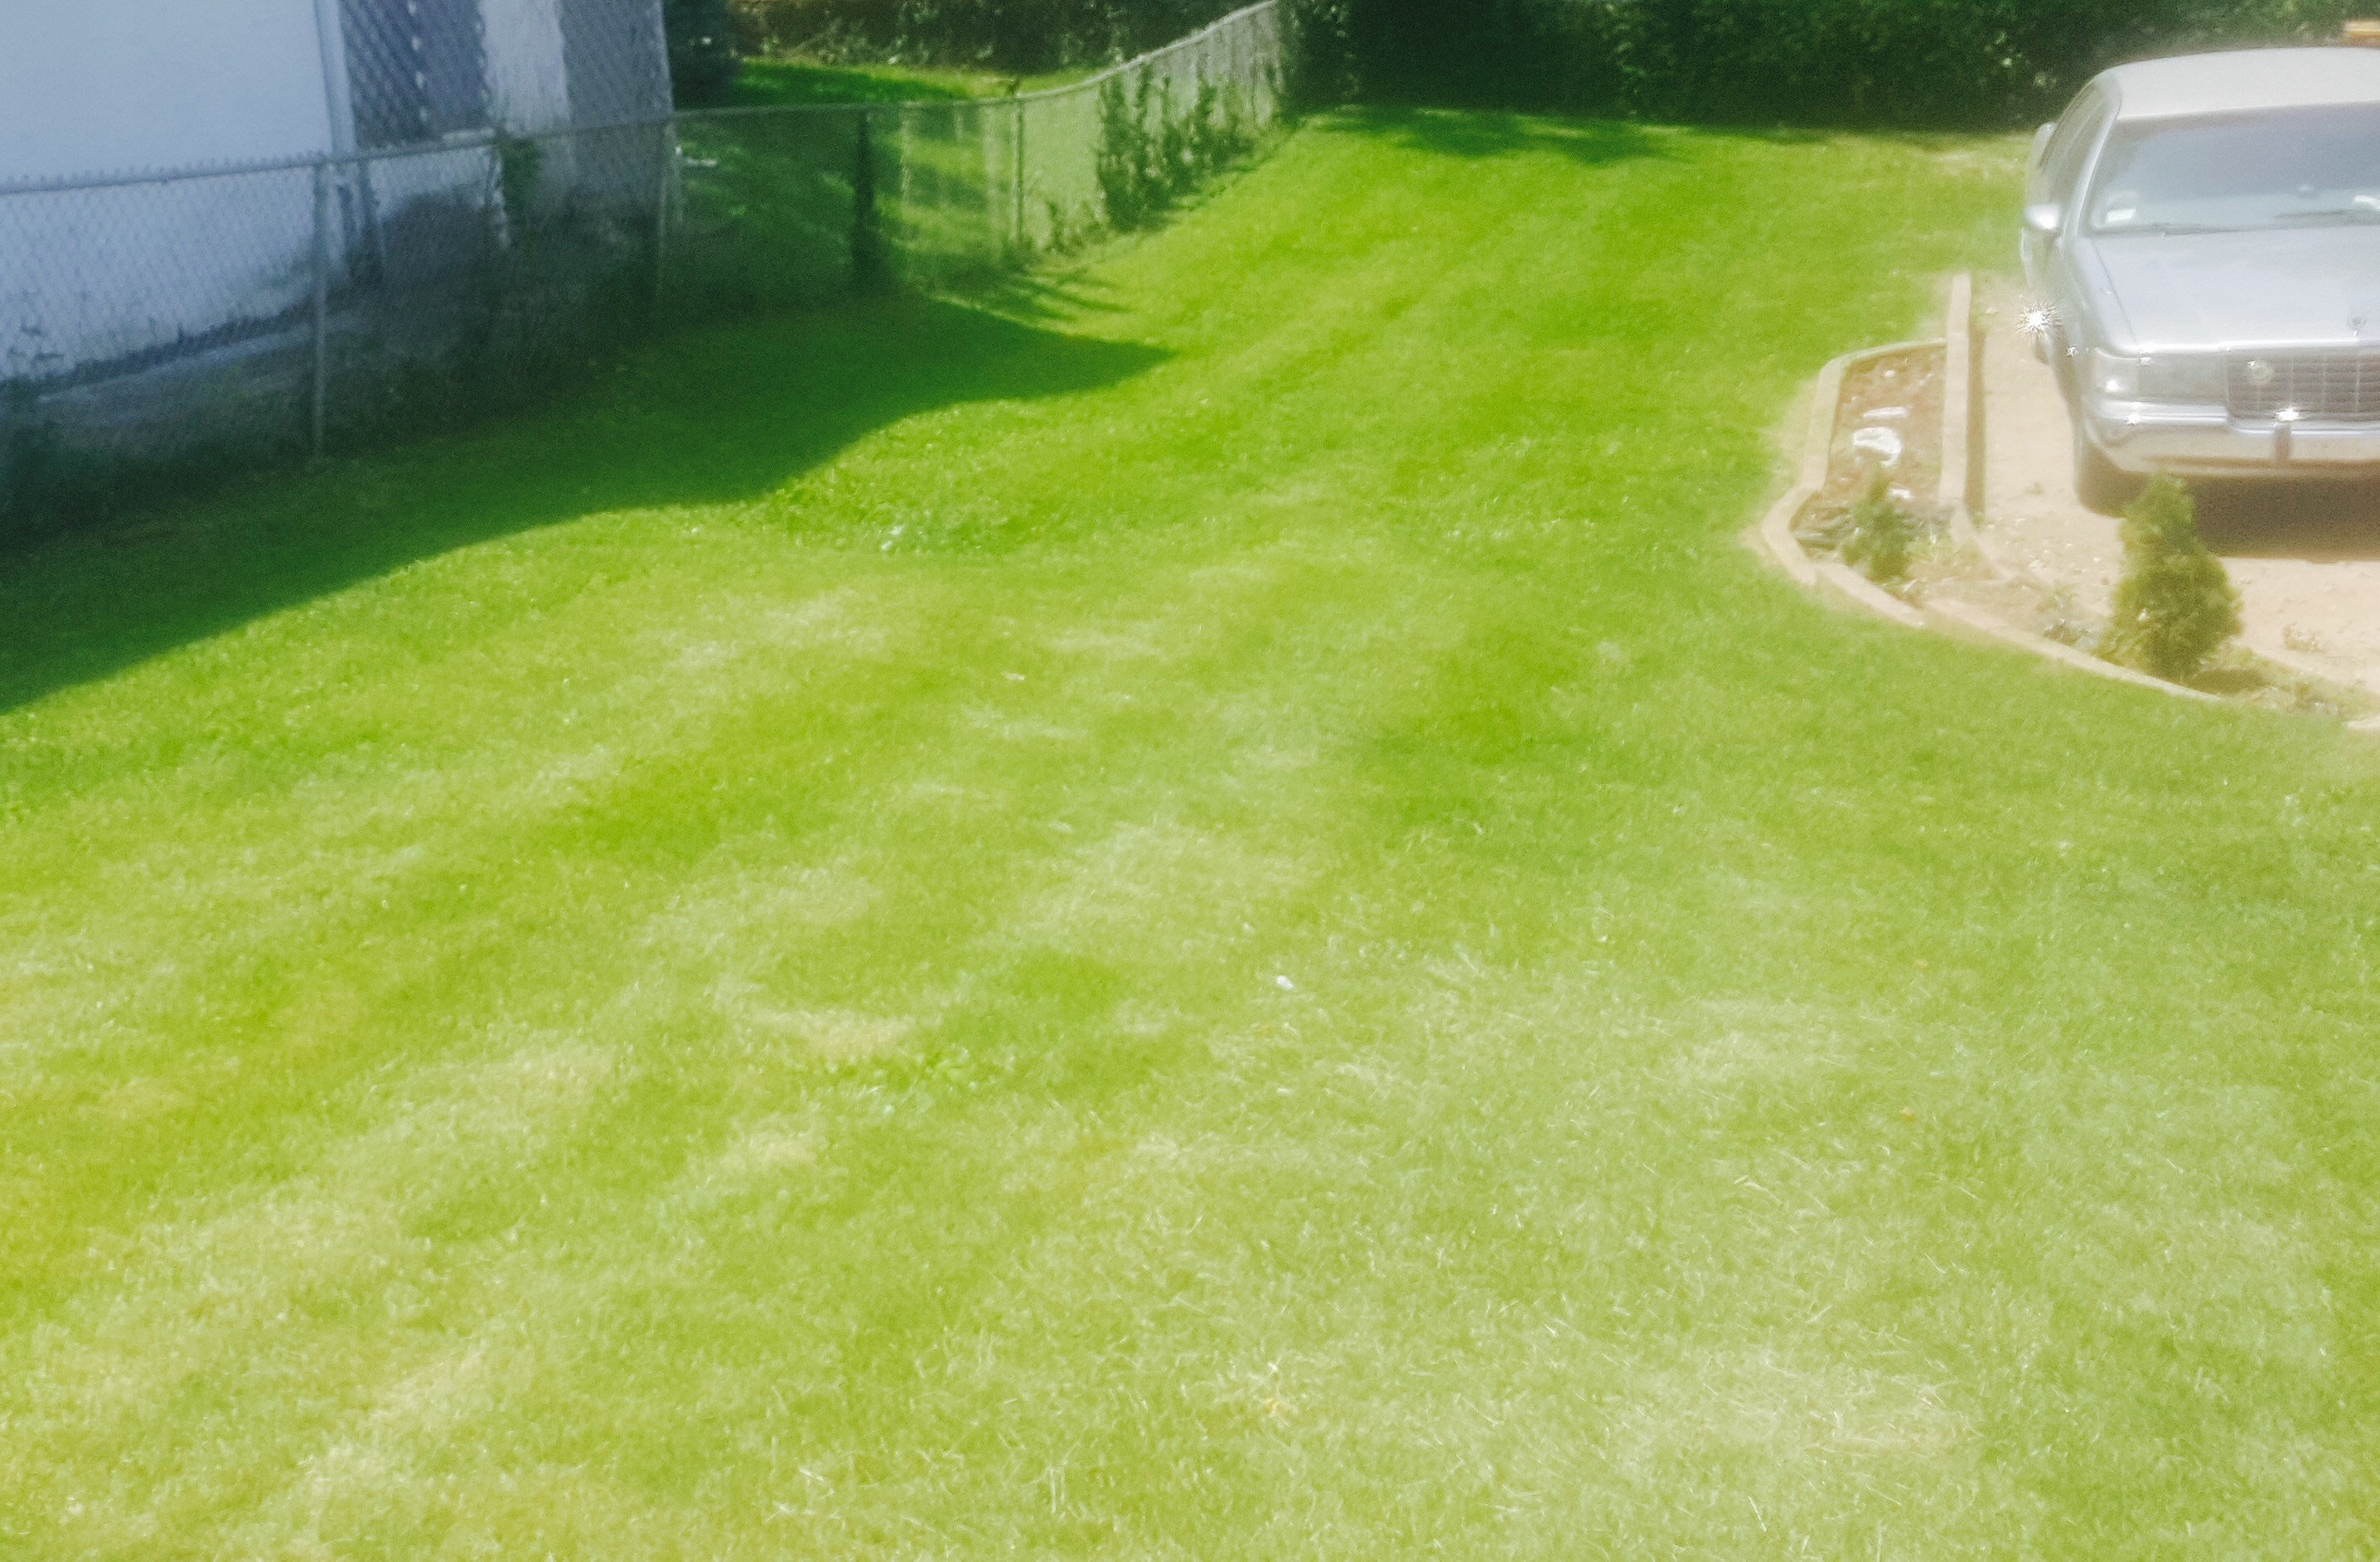 Yard mowing company in St Louis, MO, 63121